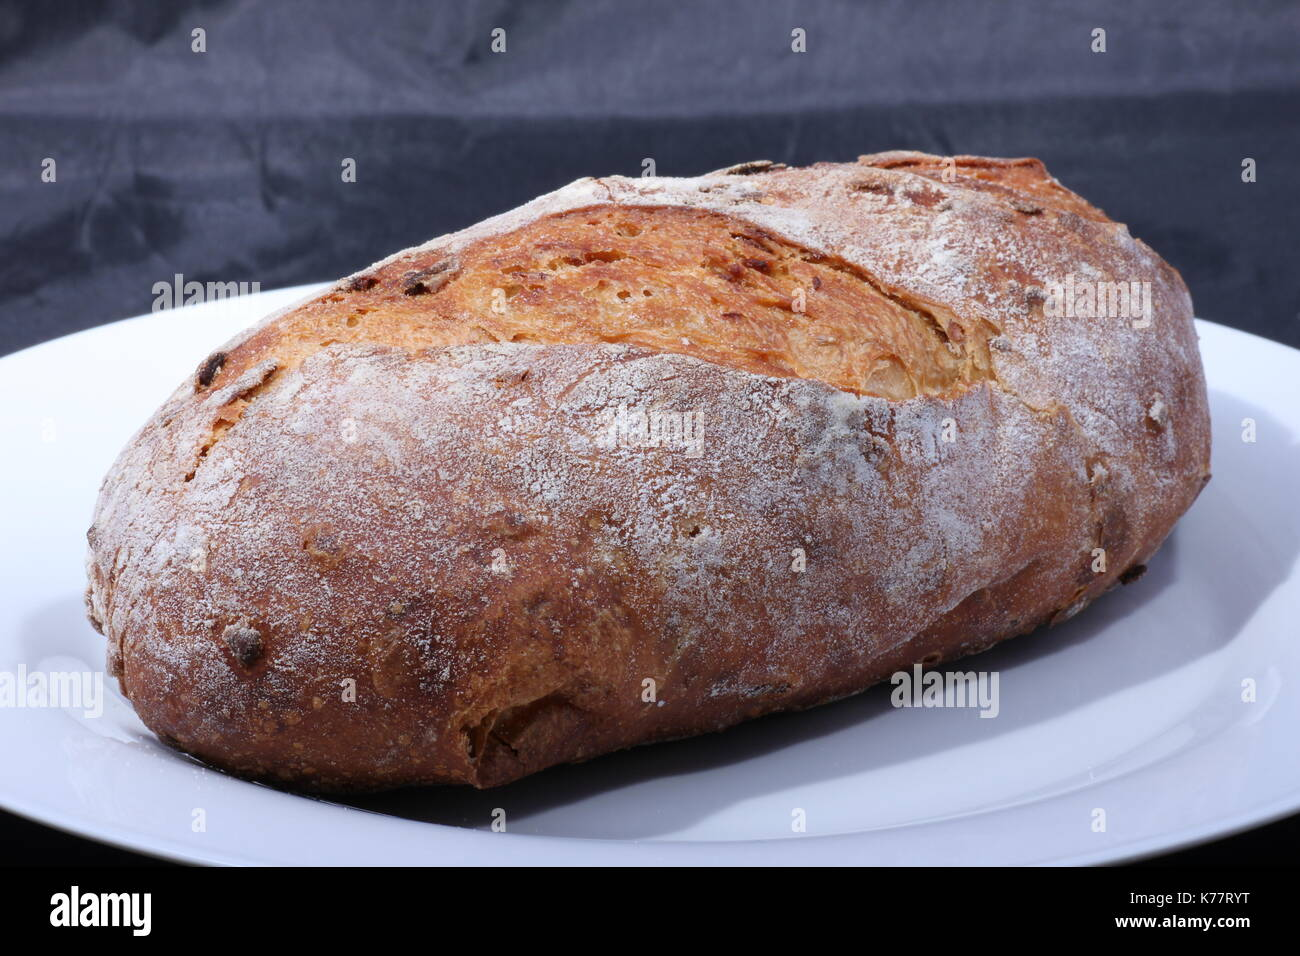 frisch gebackenes brot aus vollkorn,freshly baked bread from whole wheat, - Stock Image